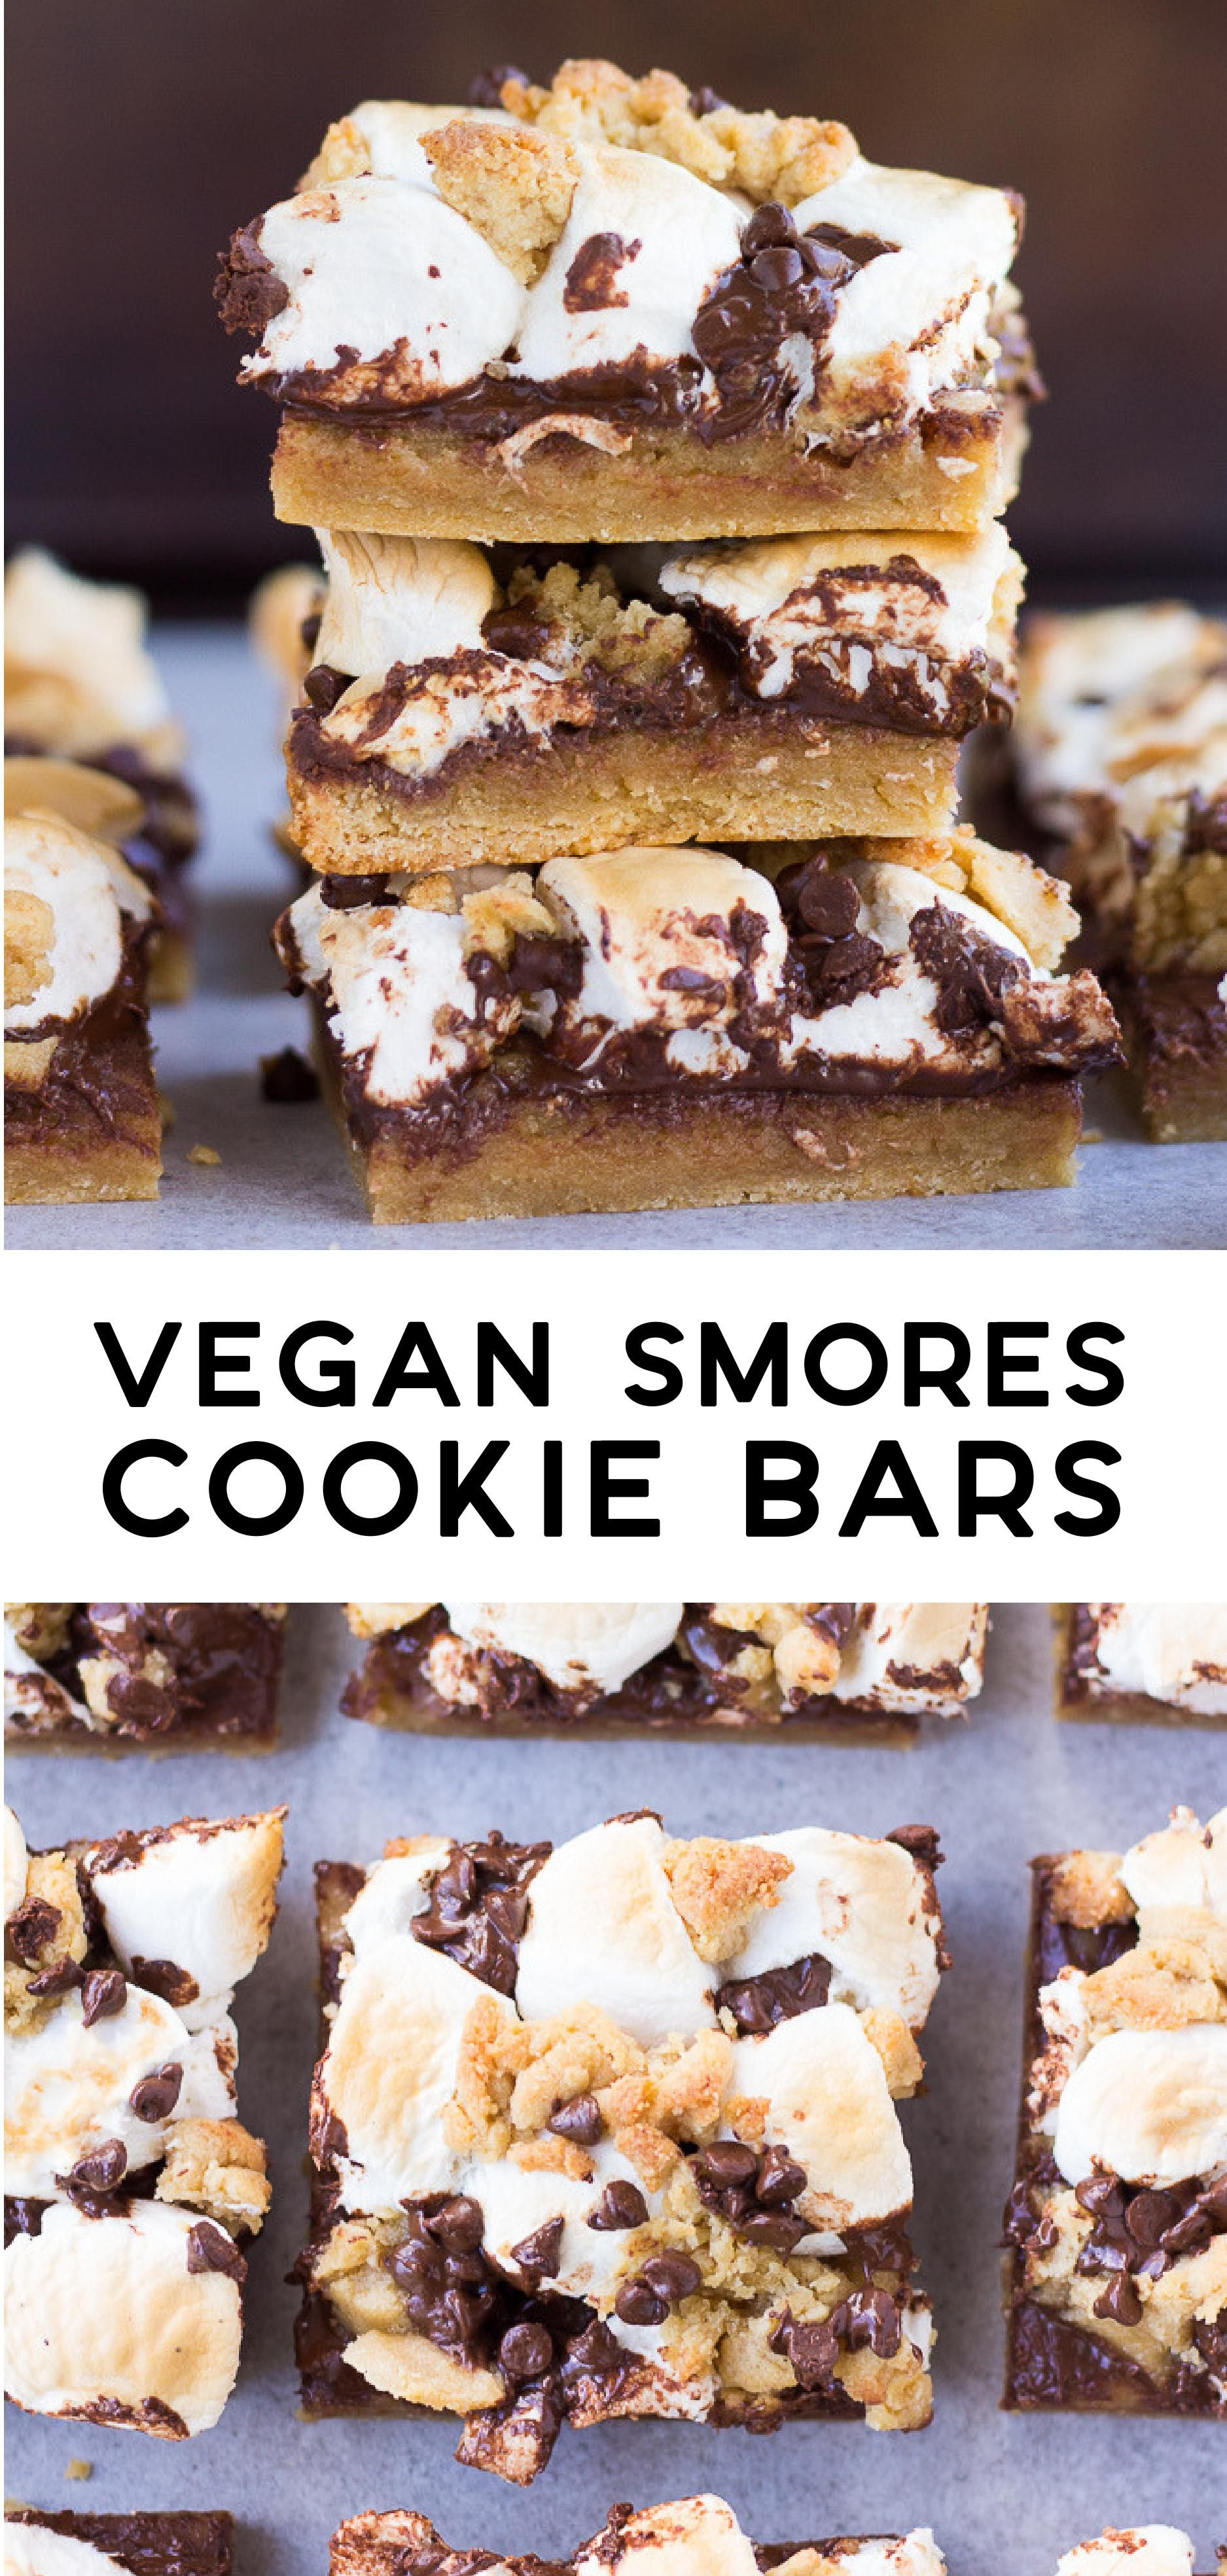 Vegan Smores Cookie Bars Feature A Golden Cookie Crust Loads Of Chocolate And A Marshmallow Topping Of Co Vegetarian Desserts Vegan Smores Smores Cookies Bars